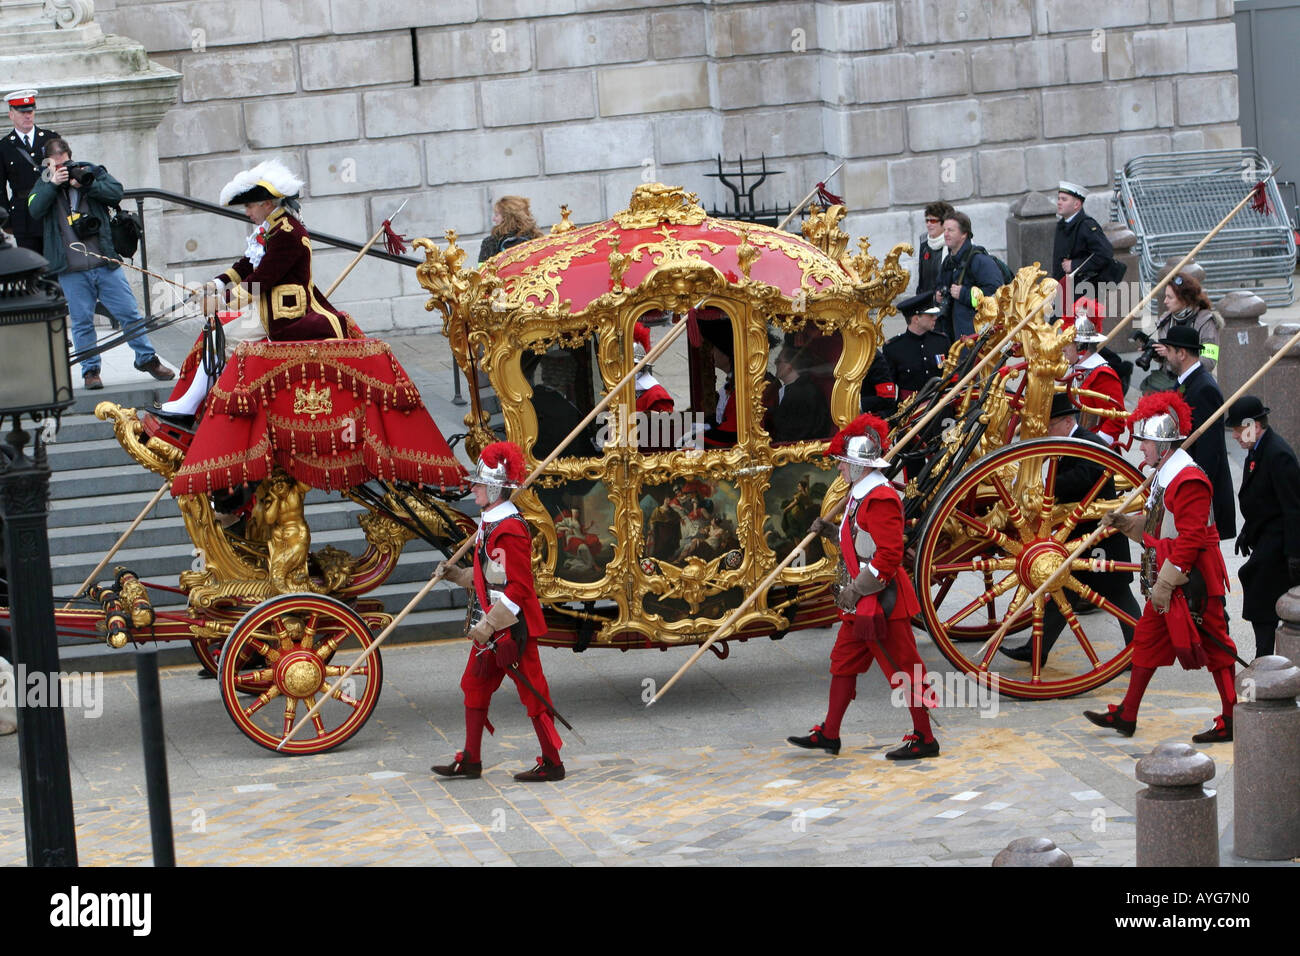 The golden coach belonging to The Lord Mayor of London leaves St Paul's Cathedral - Stock Image